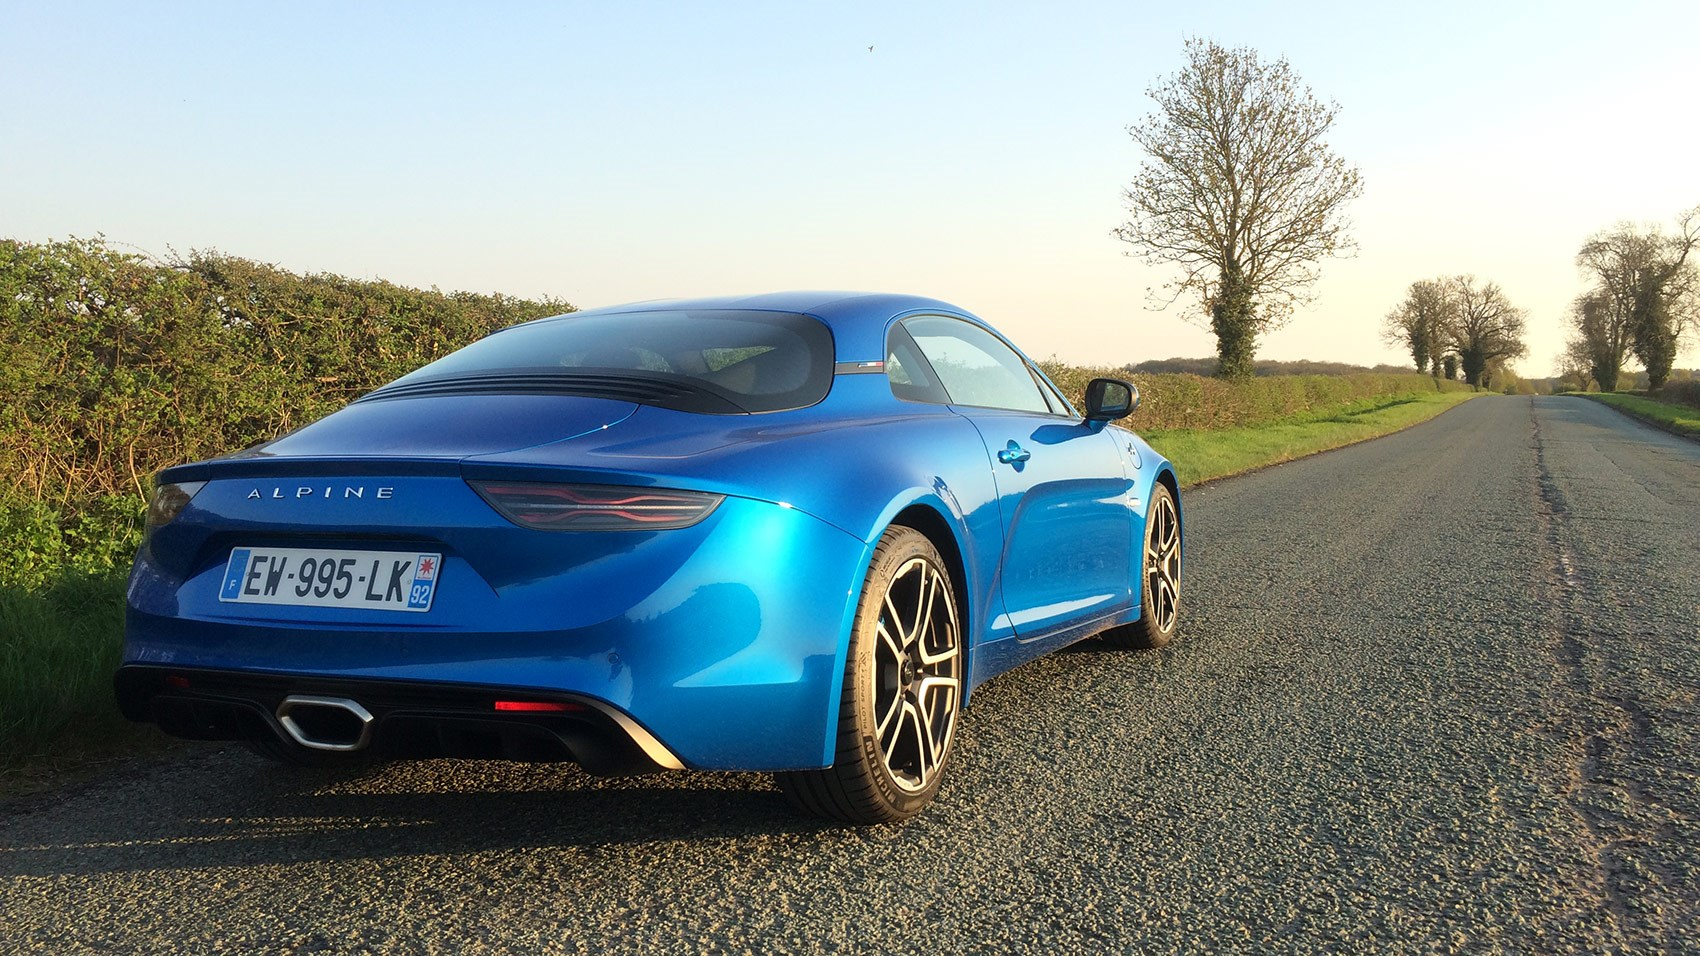 We've driven the Alpine A110 on UK roads now: and it's great